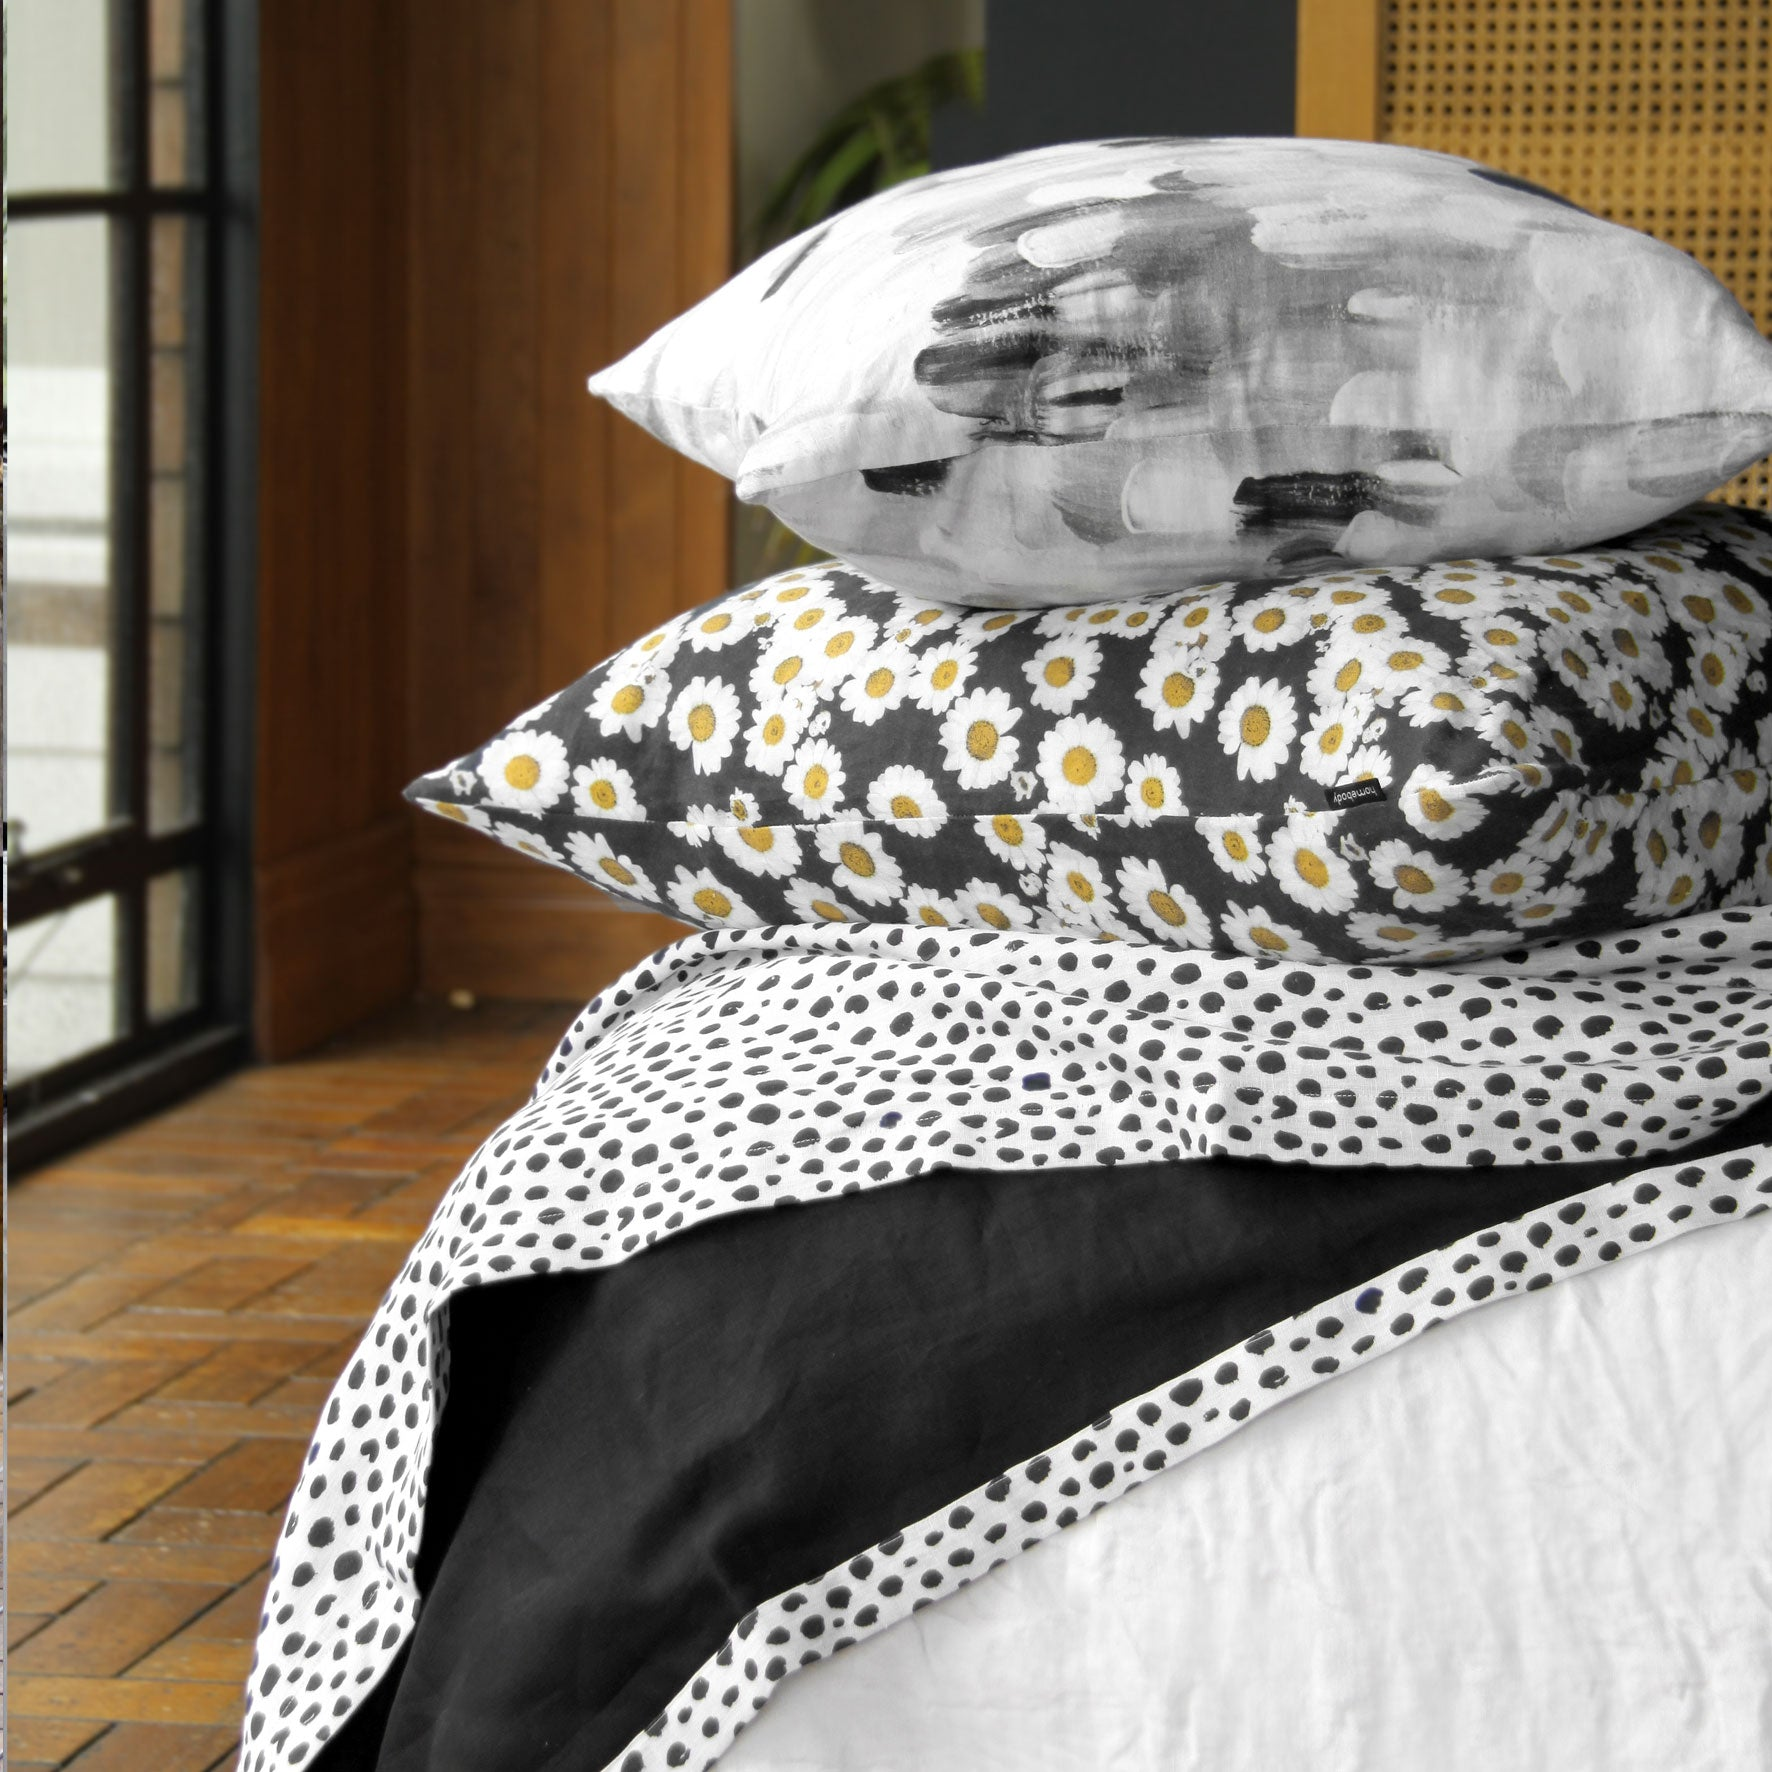 two cushions and a linen throw blanket on a bed. black and white animal print